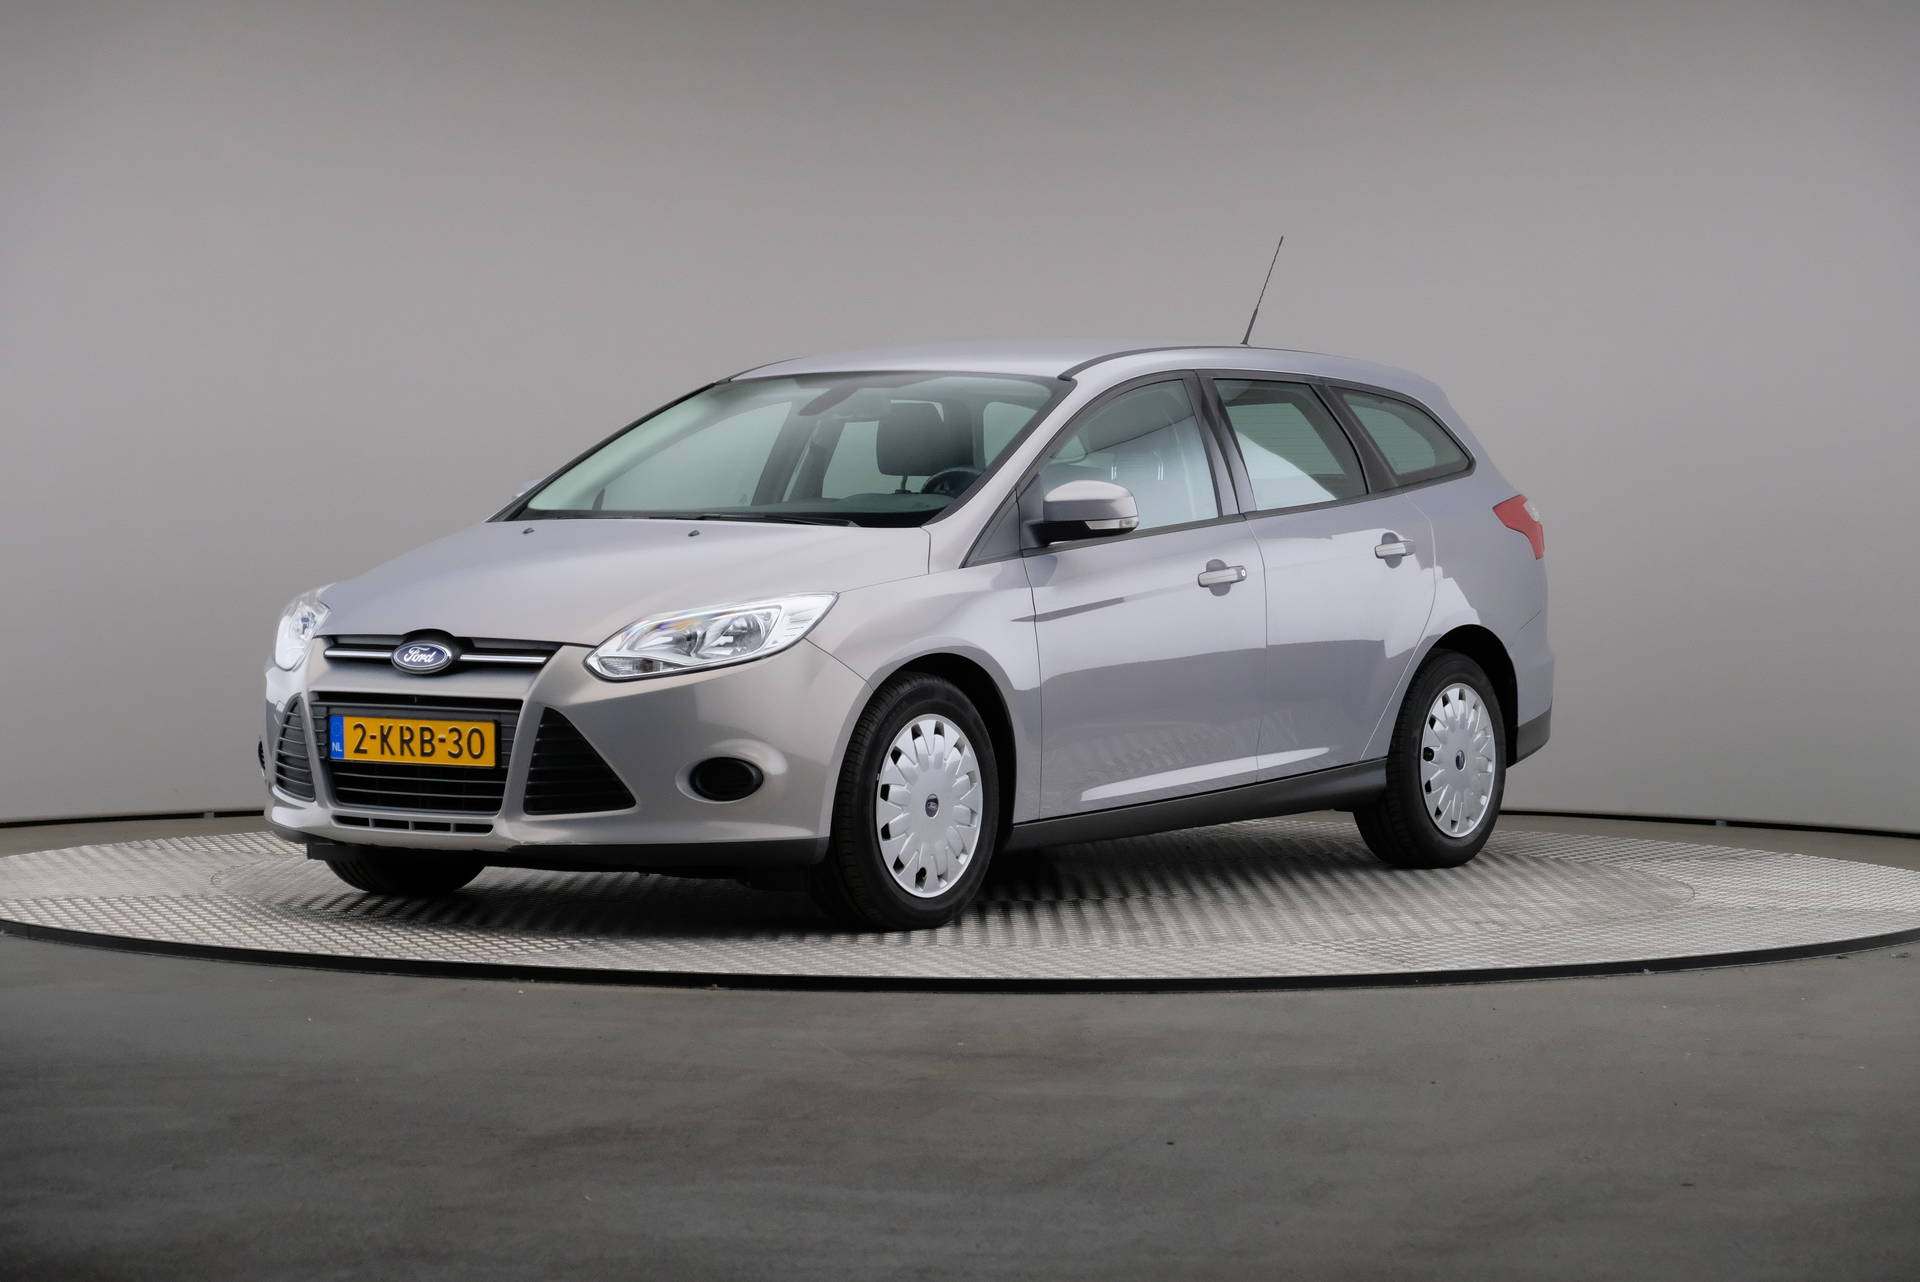 Ford Focus Wagon 1.6 TDCi ECOnetic Lease Trend, Navigatie, 360-image0